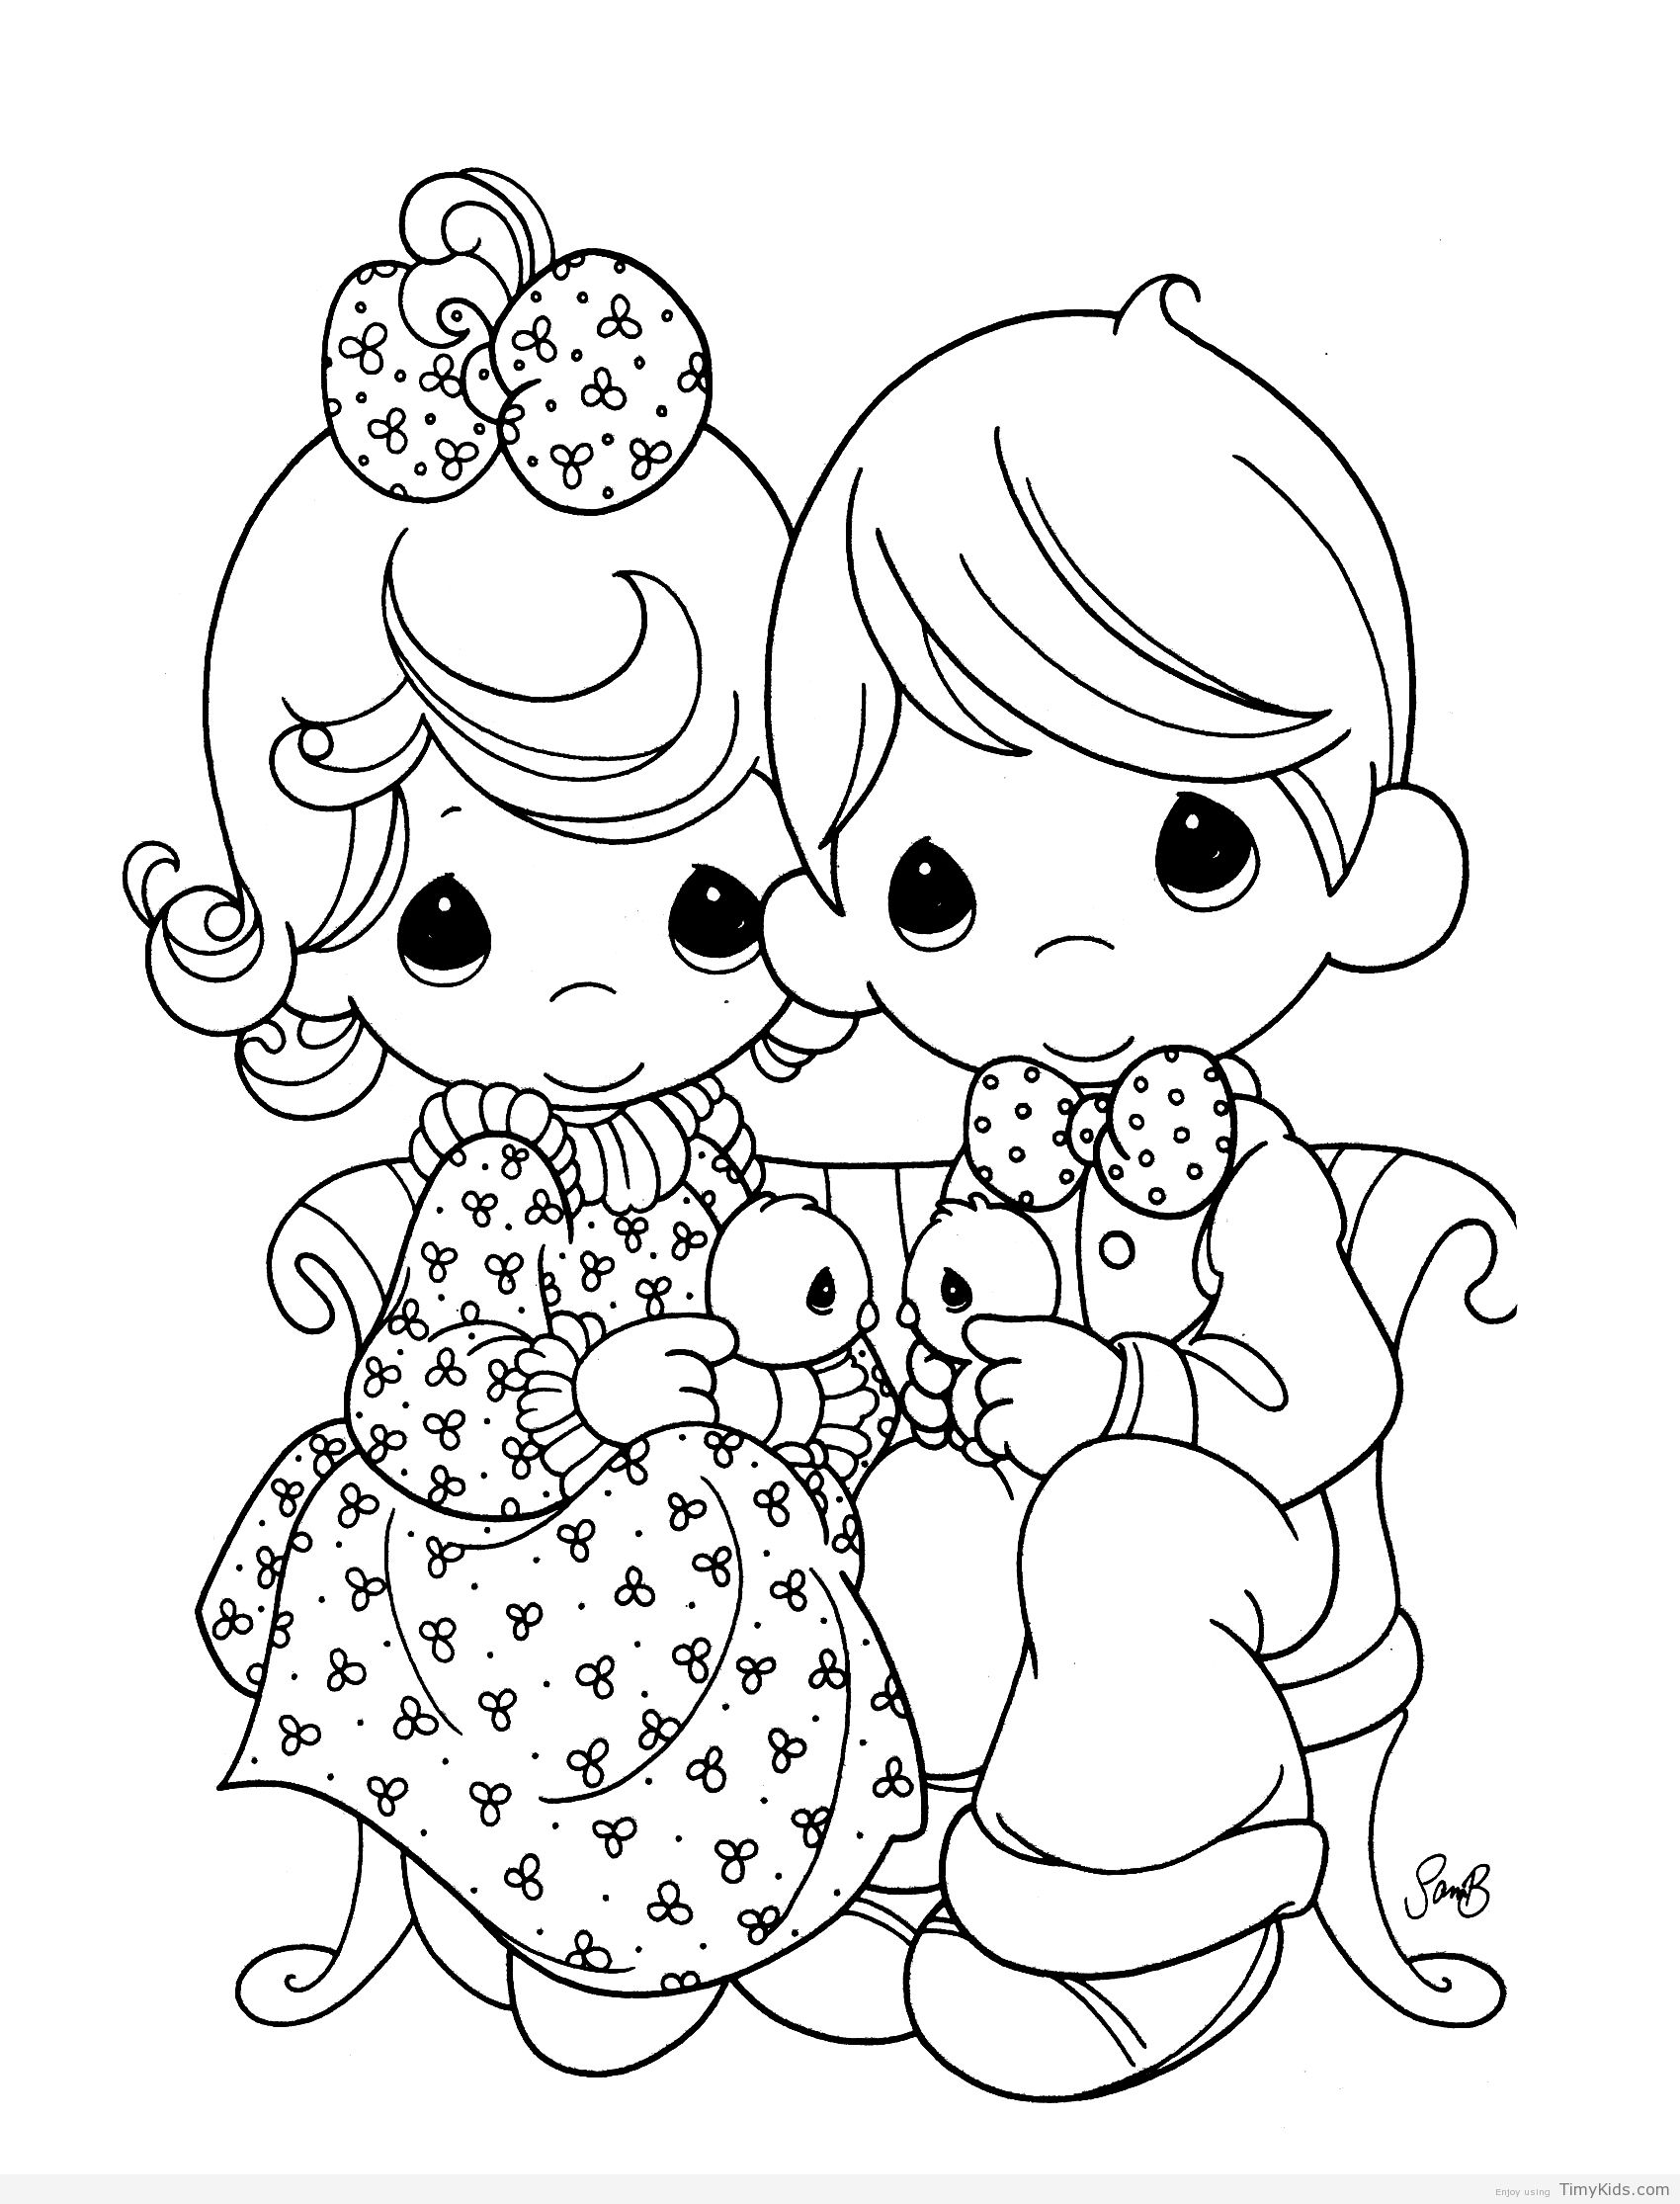 http://timykids.com/coloring-pages-precious-moments.html | Colorings ...